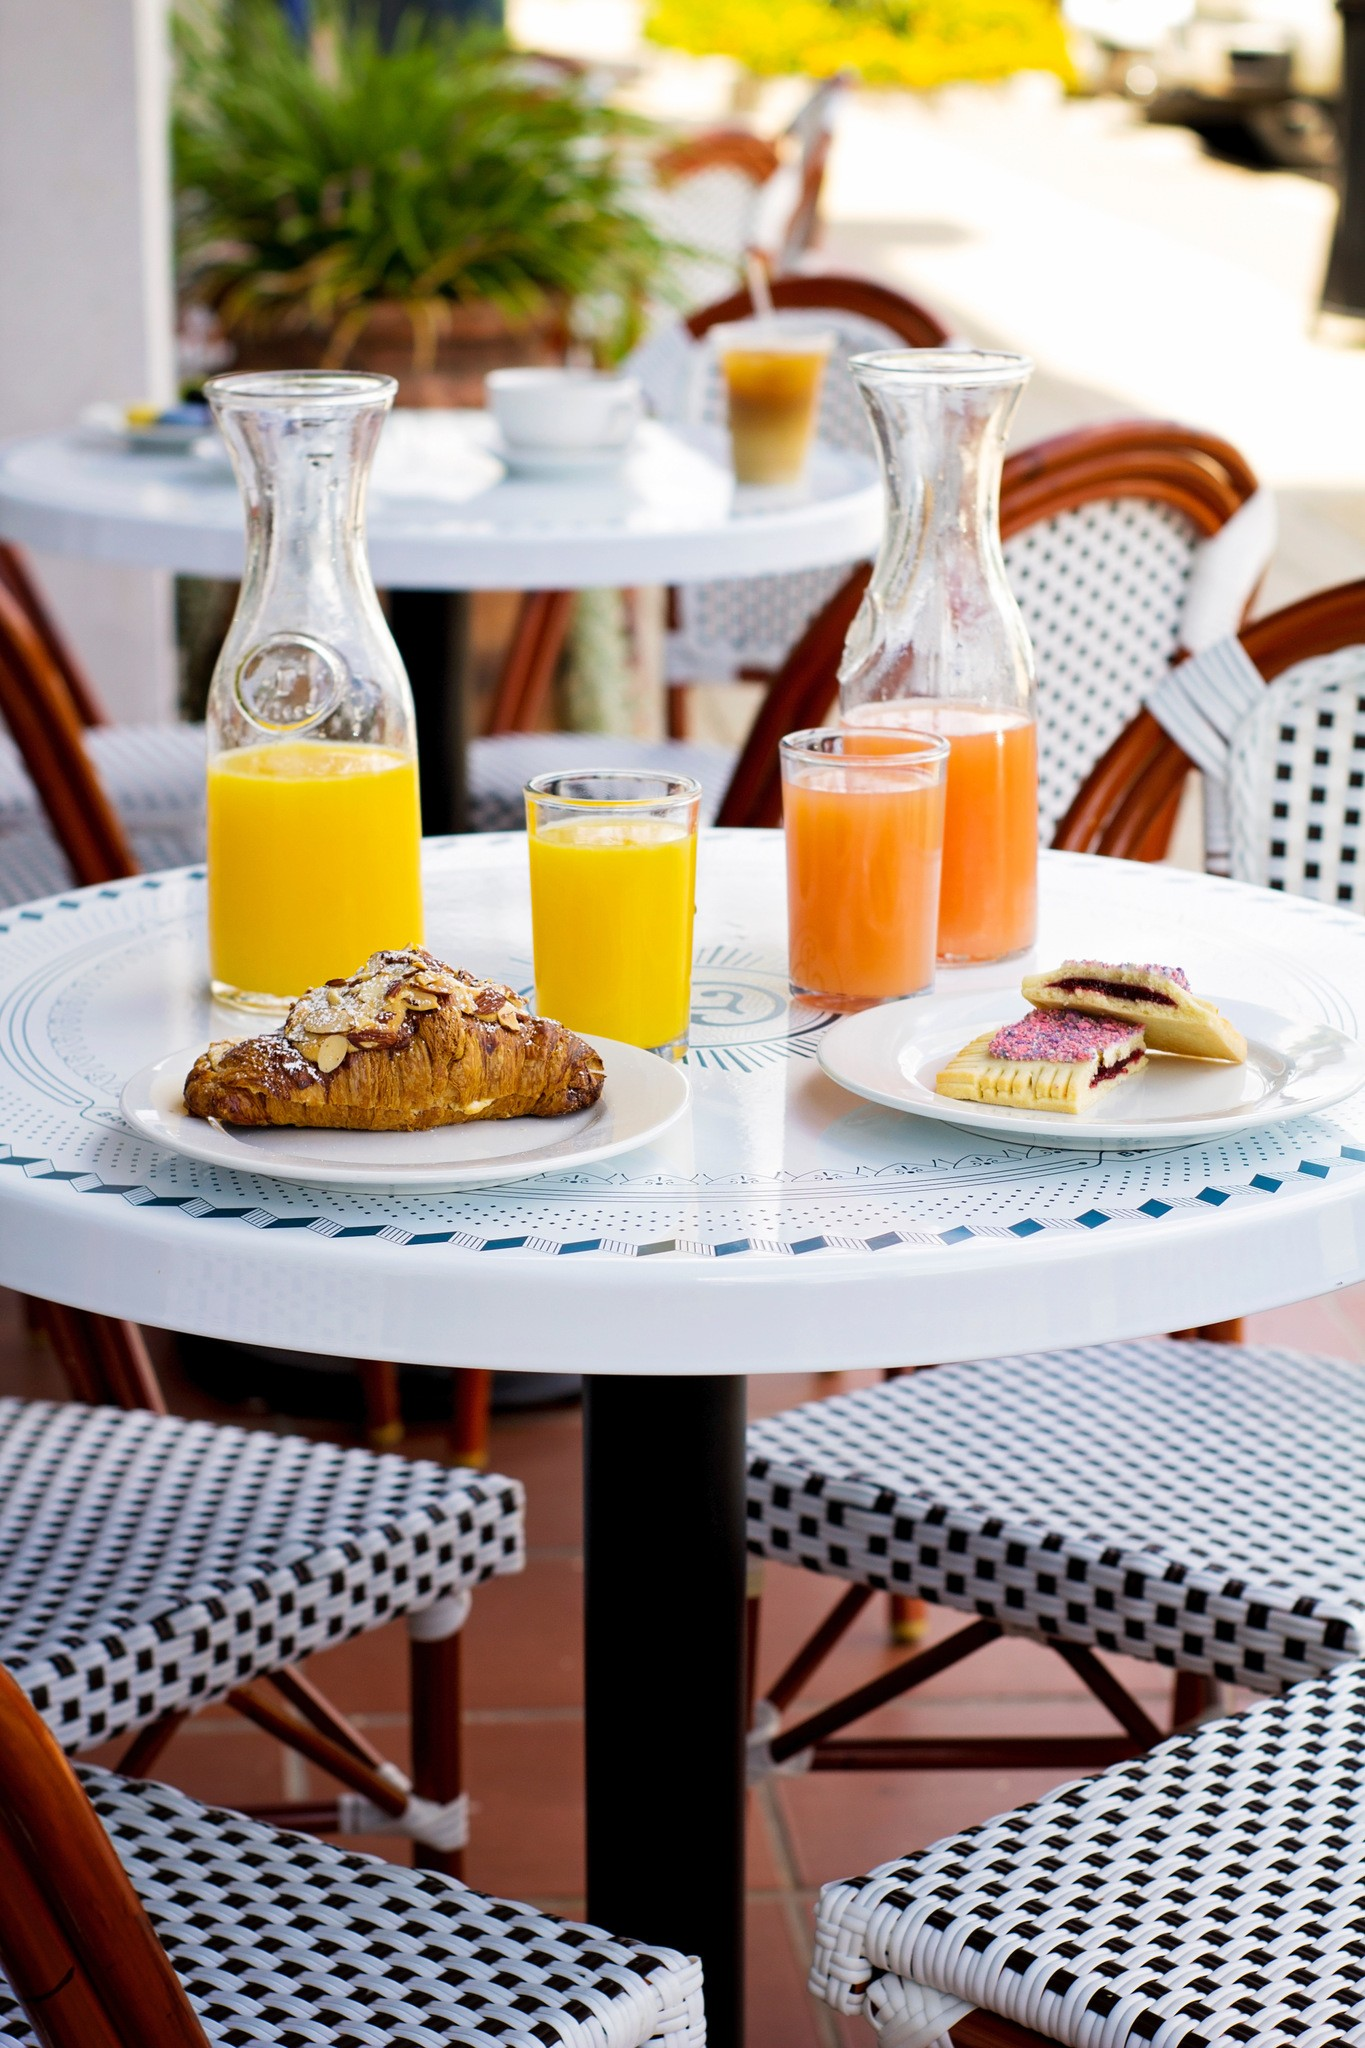 Pastry Happy Hour Mimosa Carafes Now At Bakery Lorraine S